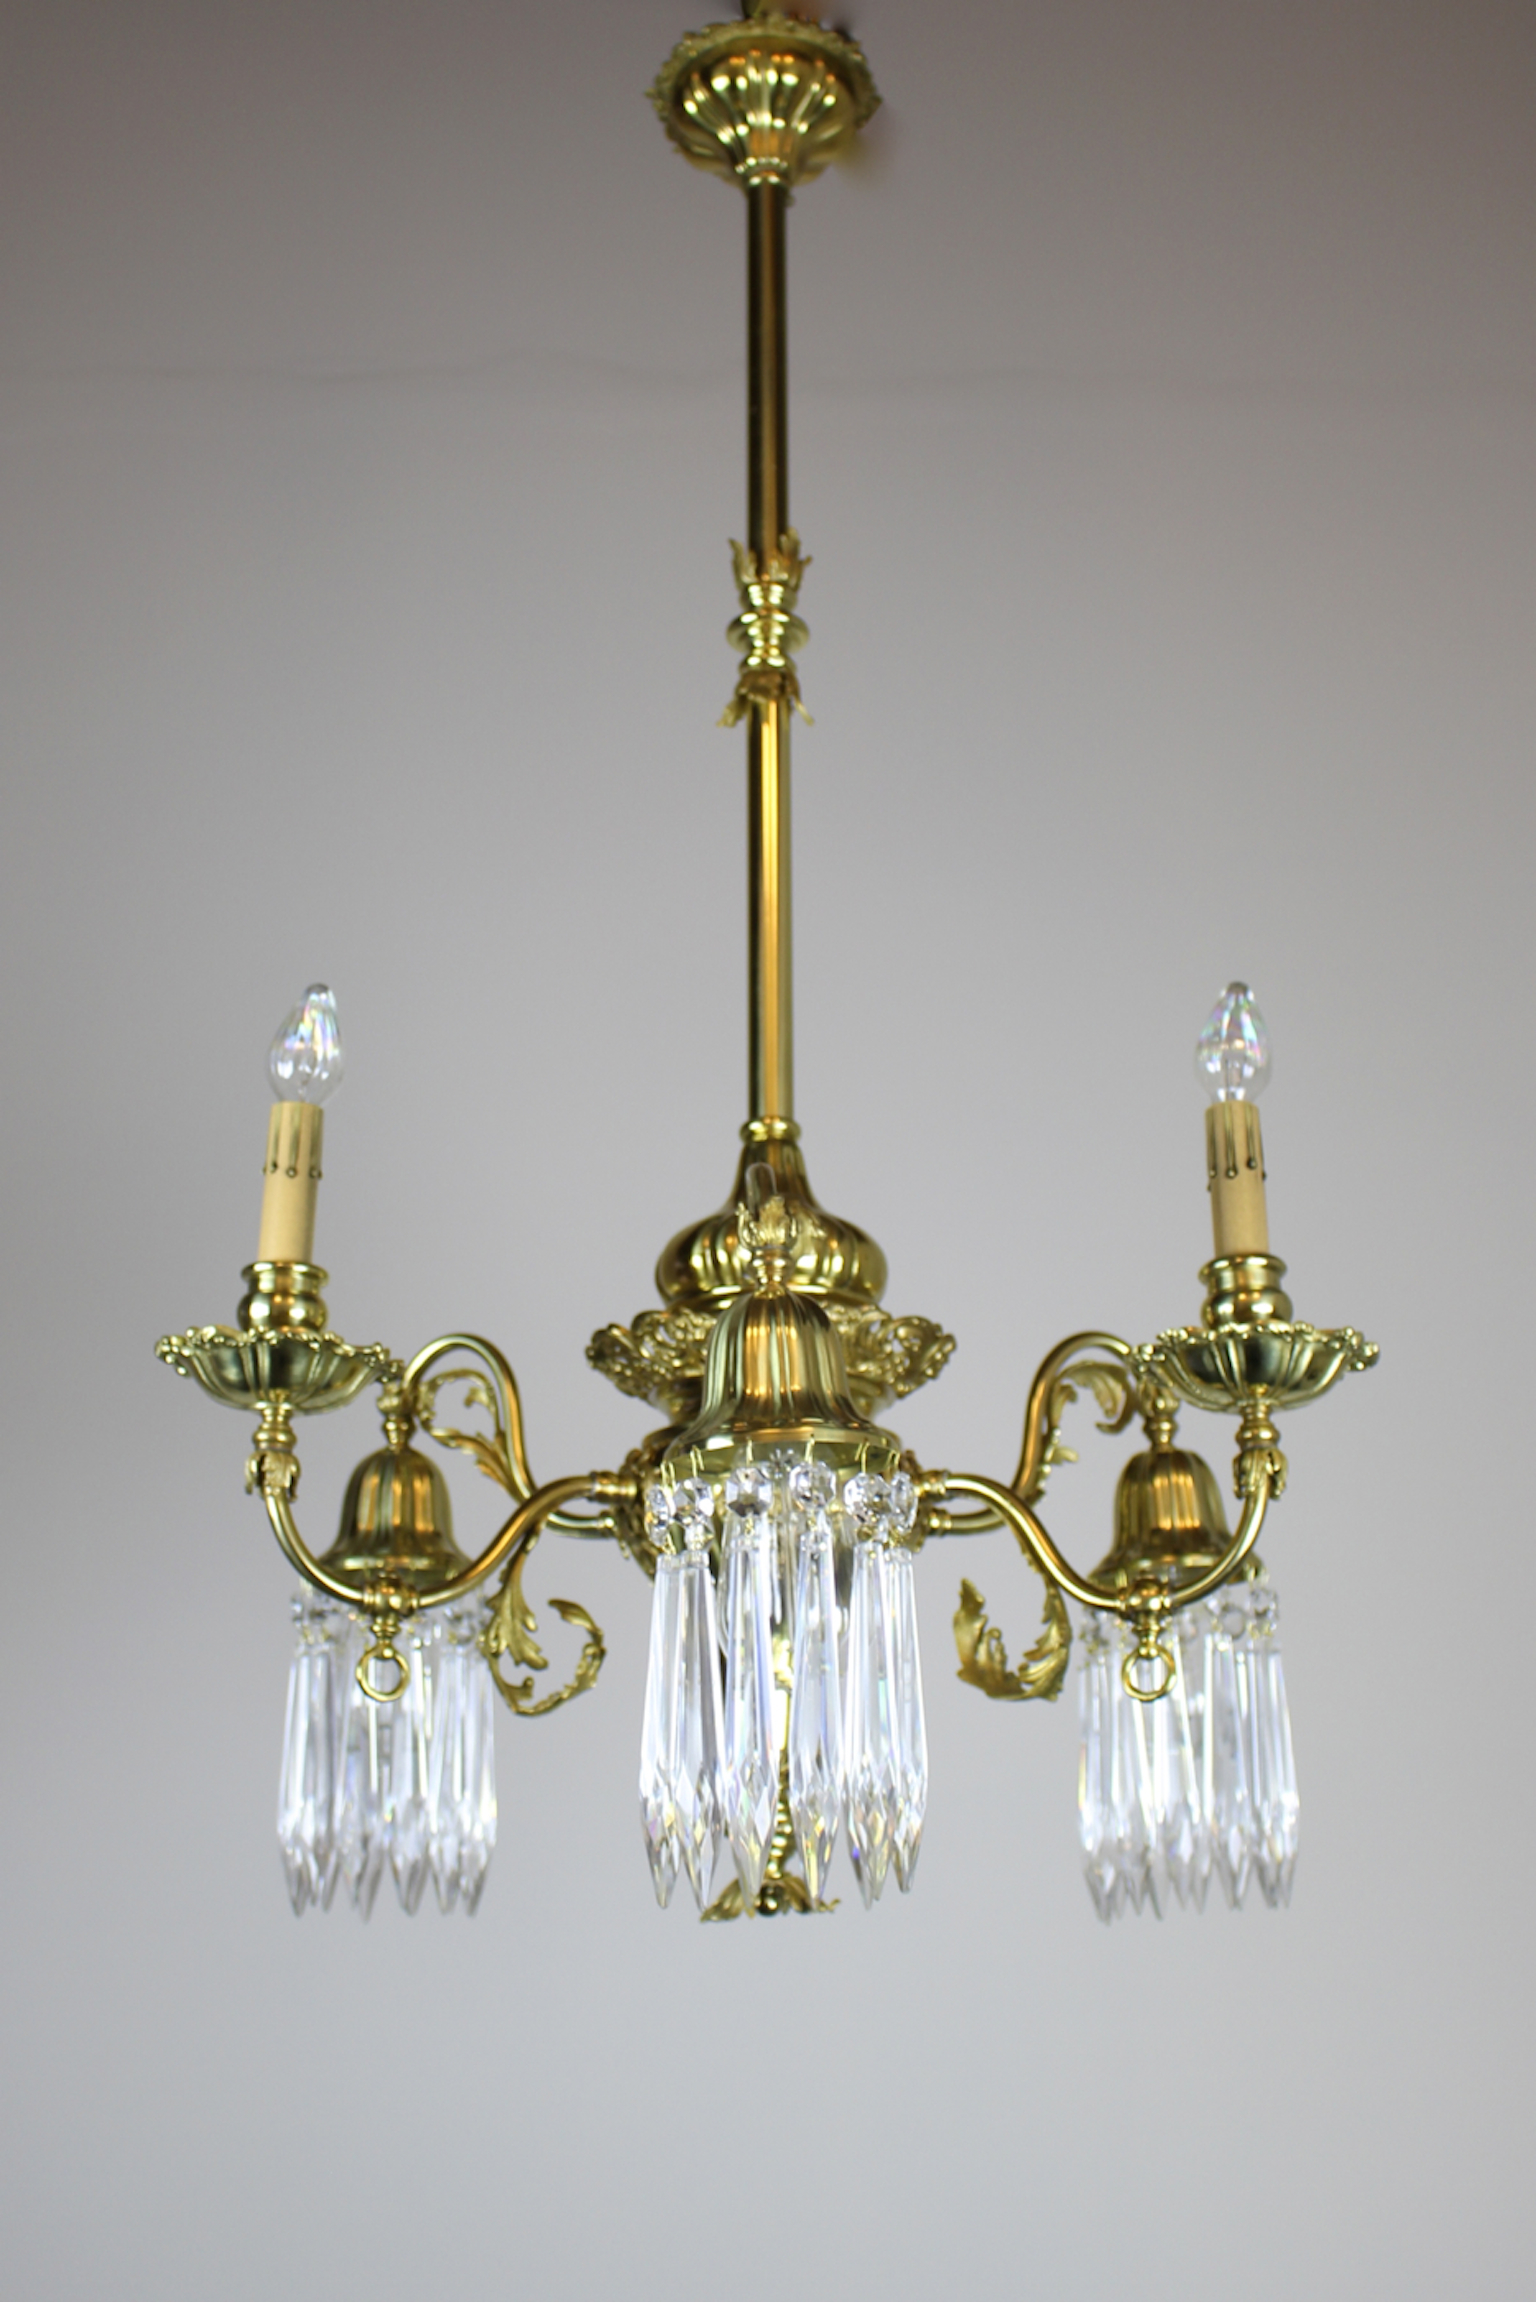 See ... & Converted Gas-Electric Decorative Sheffield-Style Chandelier | azcodes.com